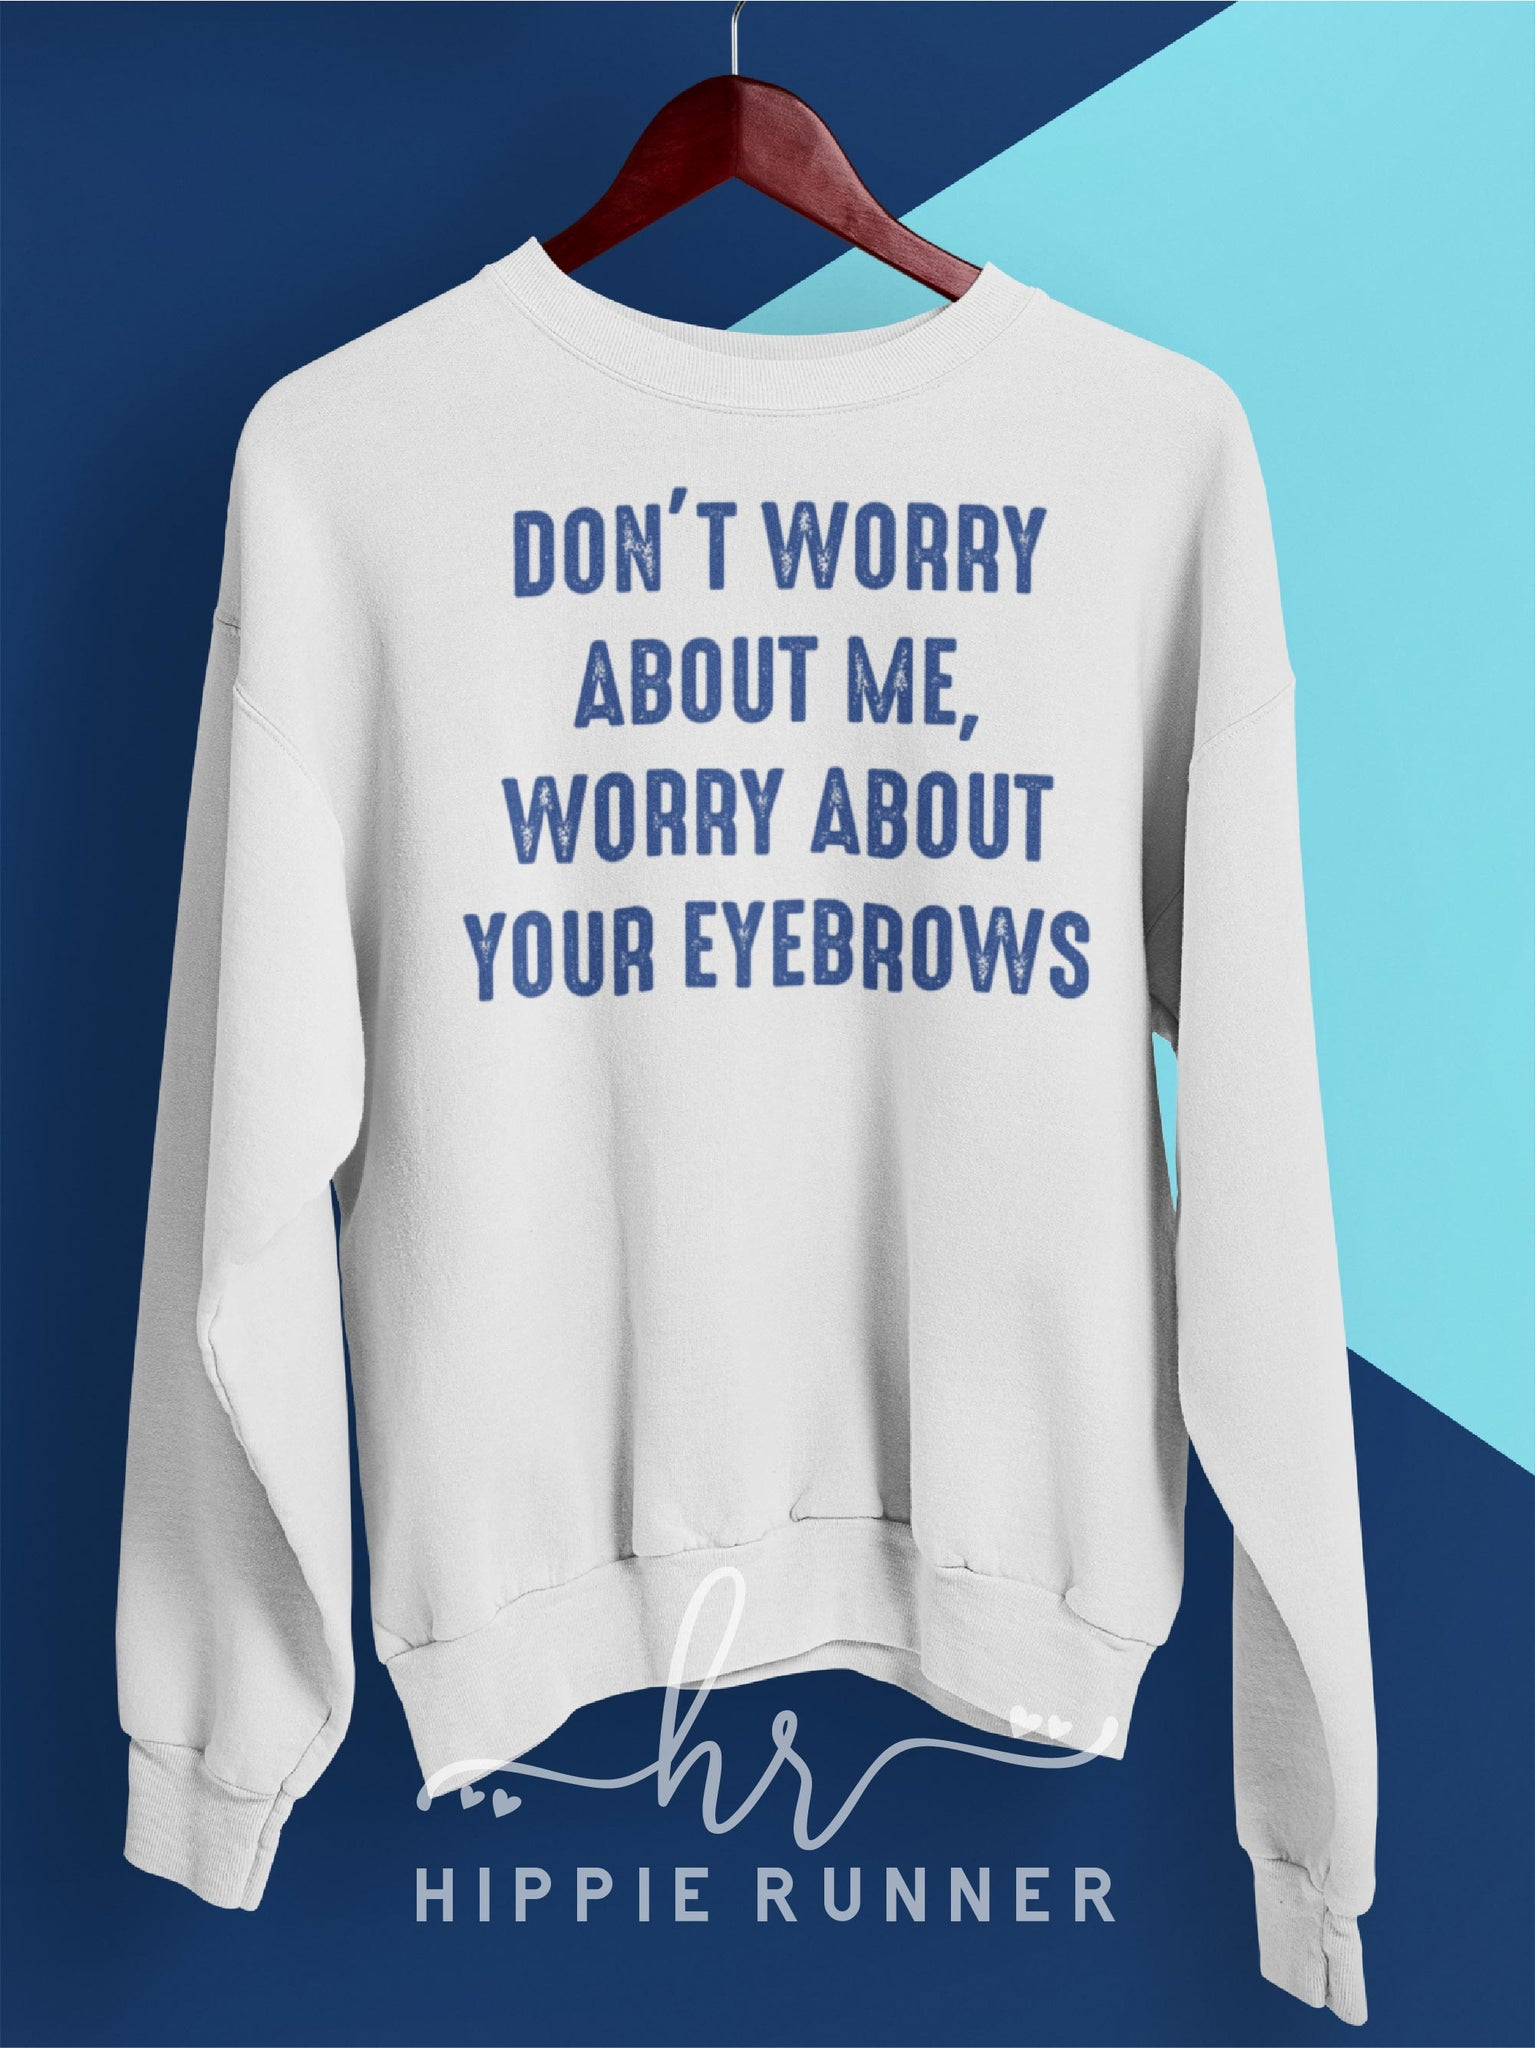 Don't Worry About Me, Worry About Your Eyebrows